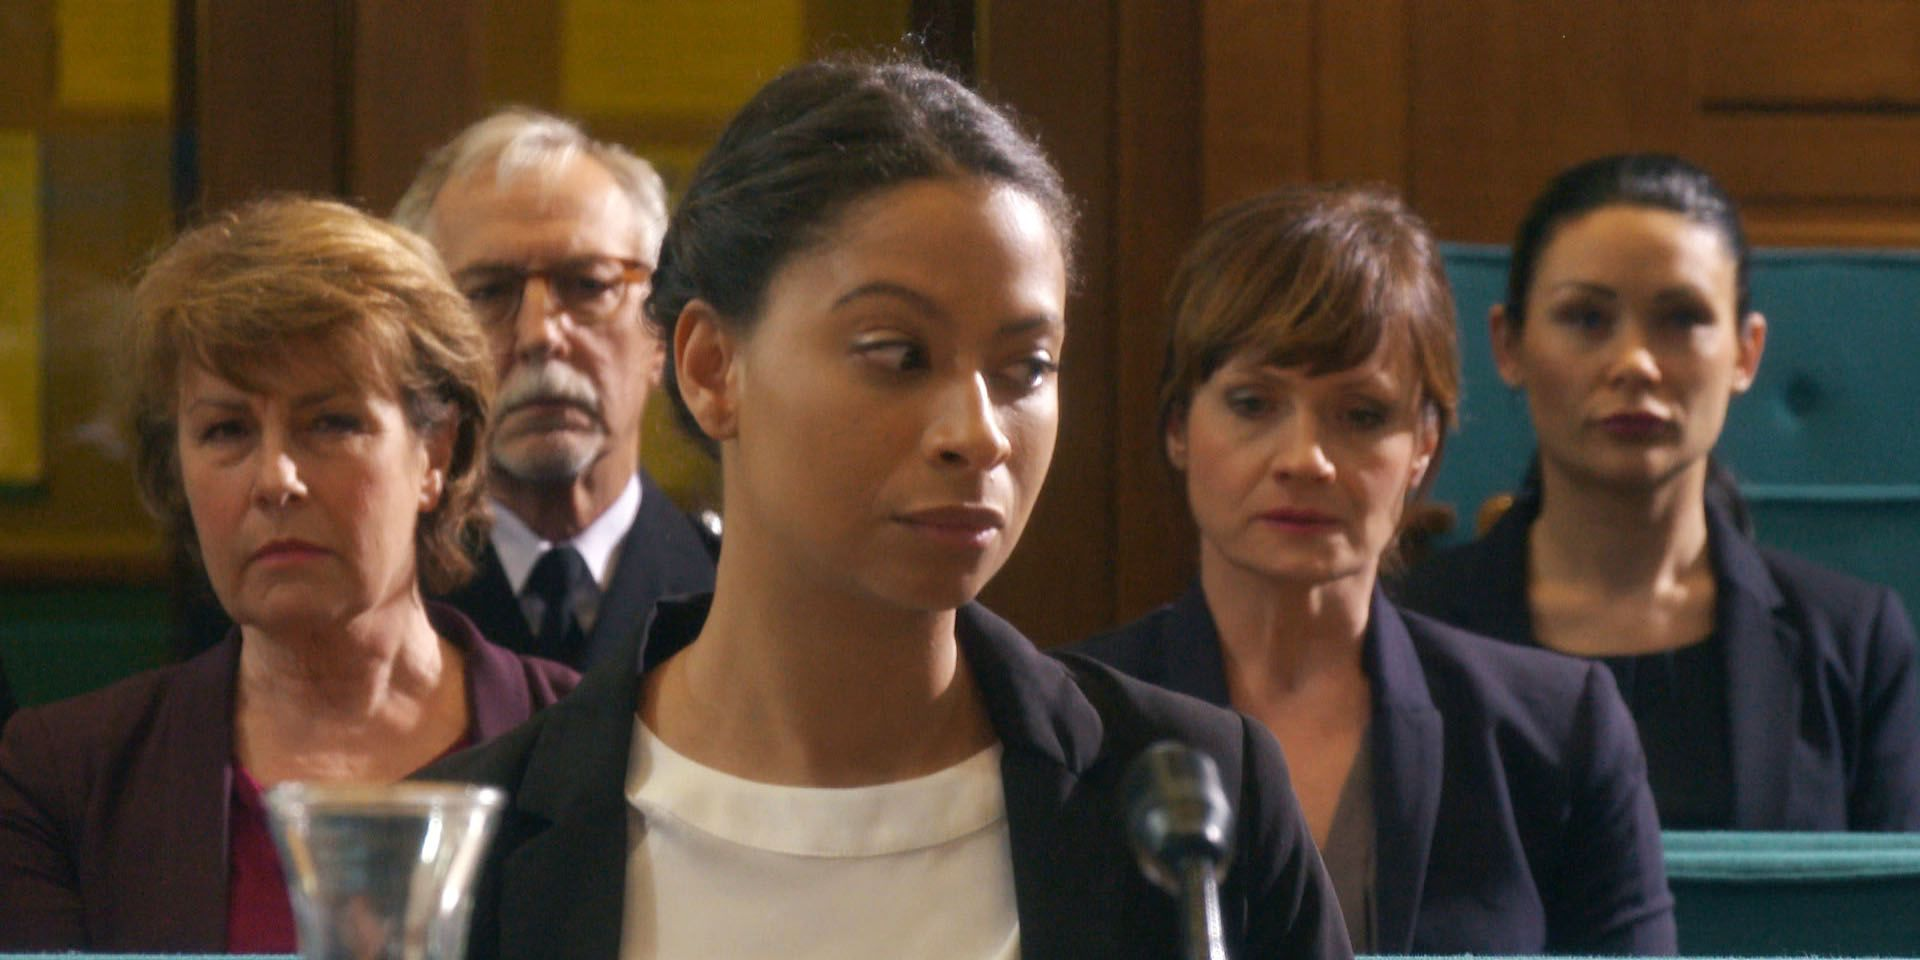 Ayesha Lee and Emma Reid at the coroner's inquest in Doctors